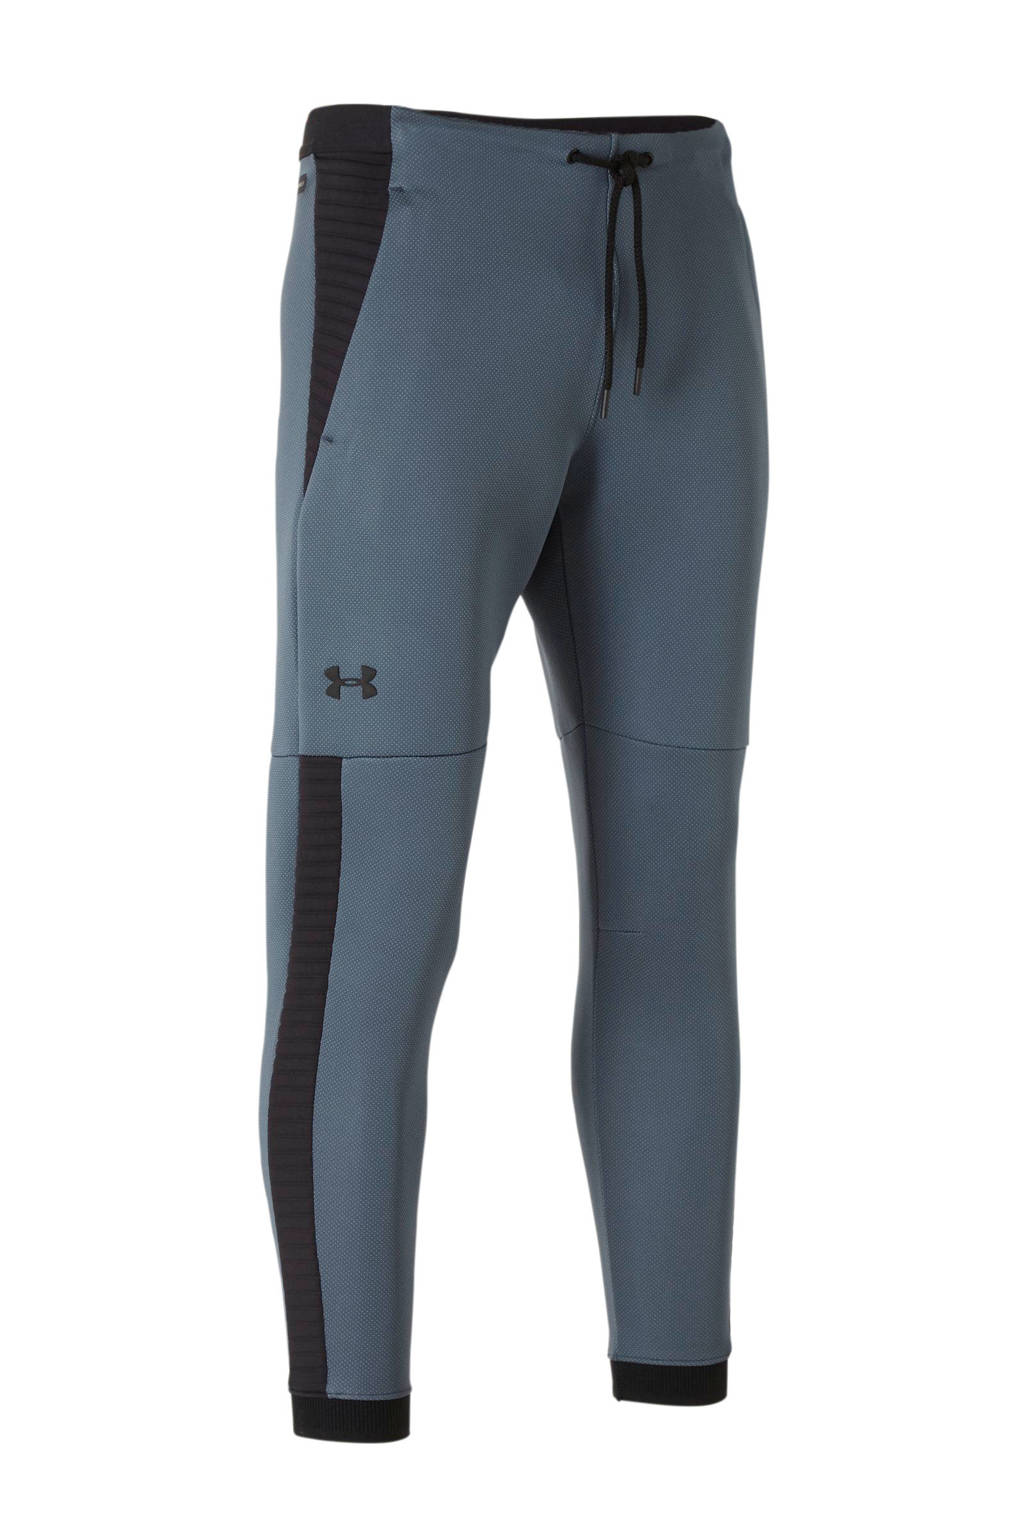 Under Armour   sportbroek grijsgroen, Grijsgroen